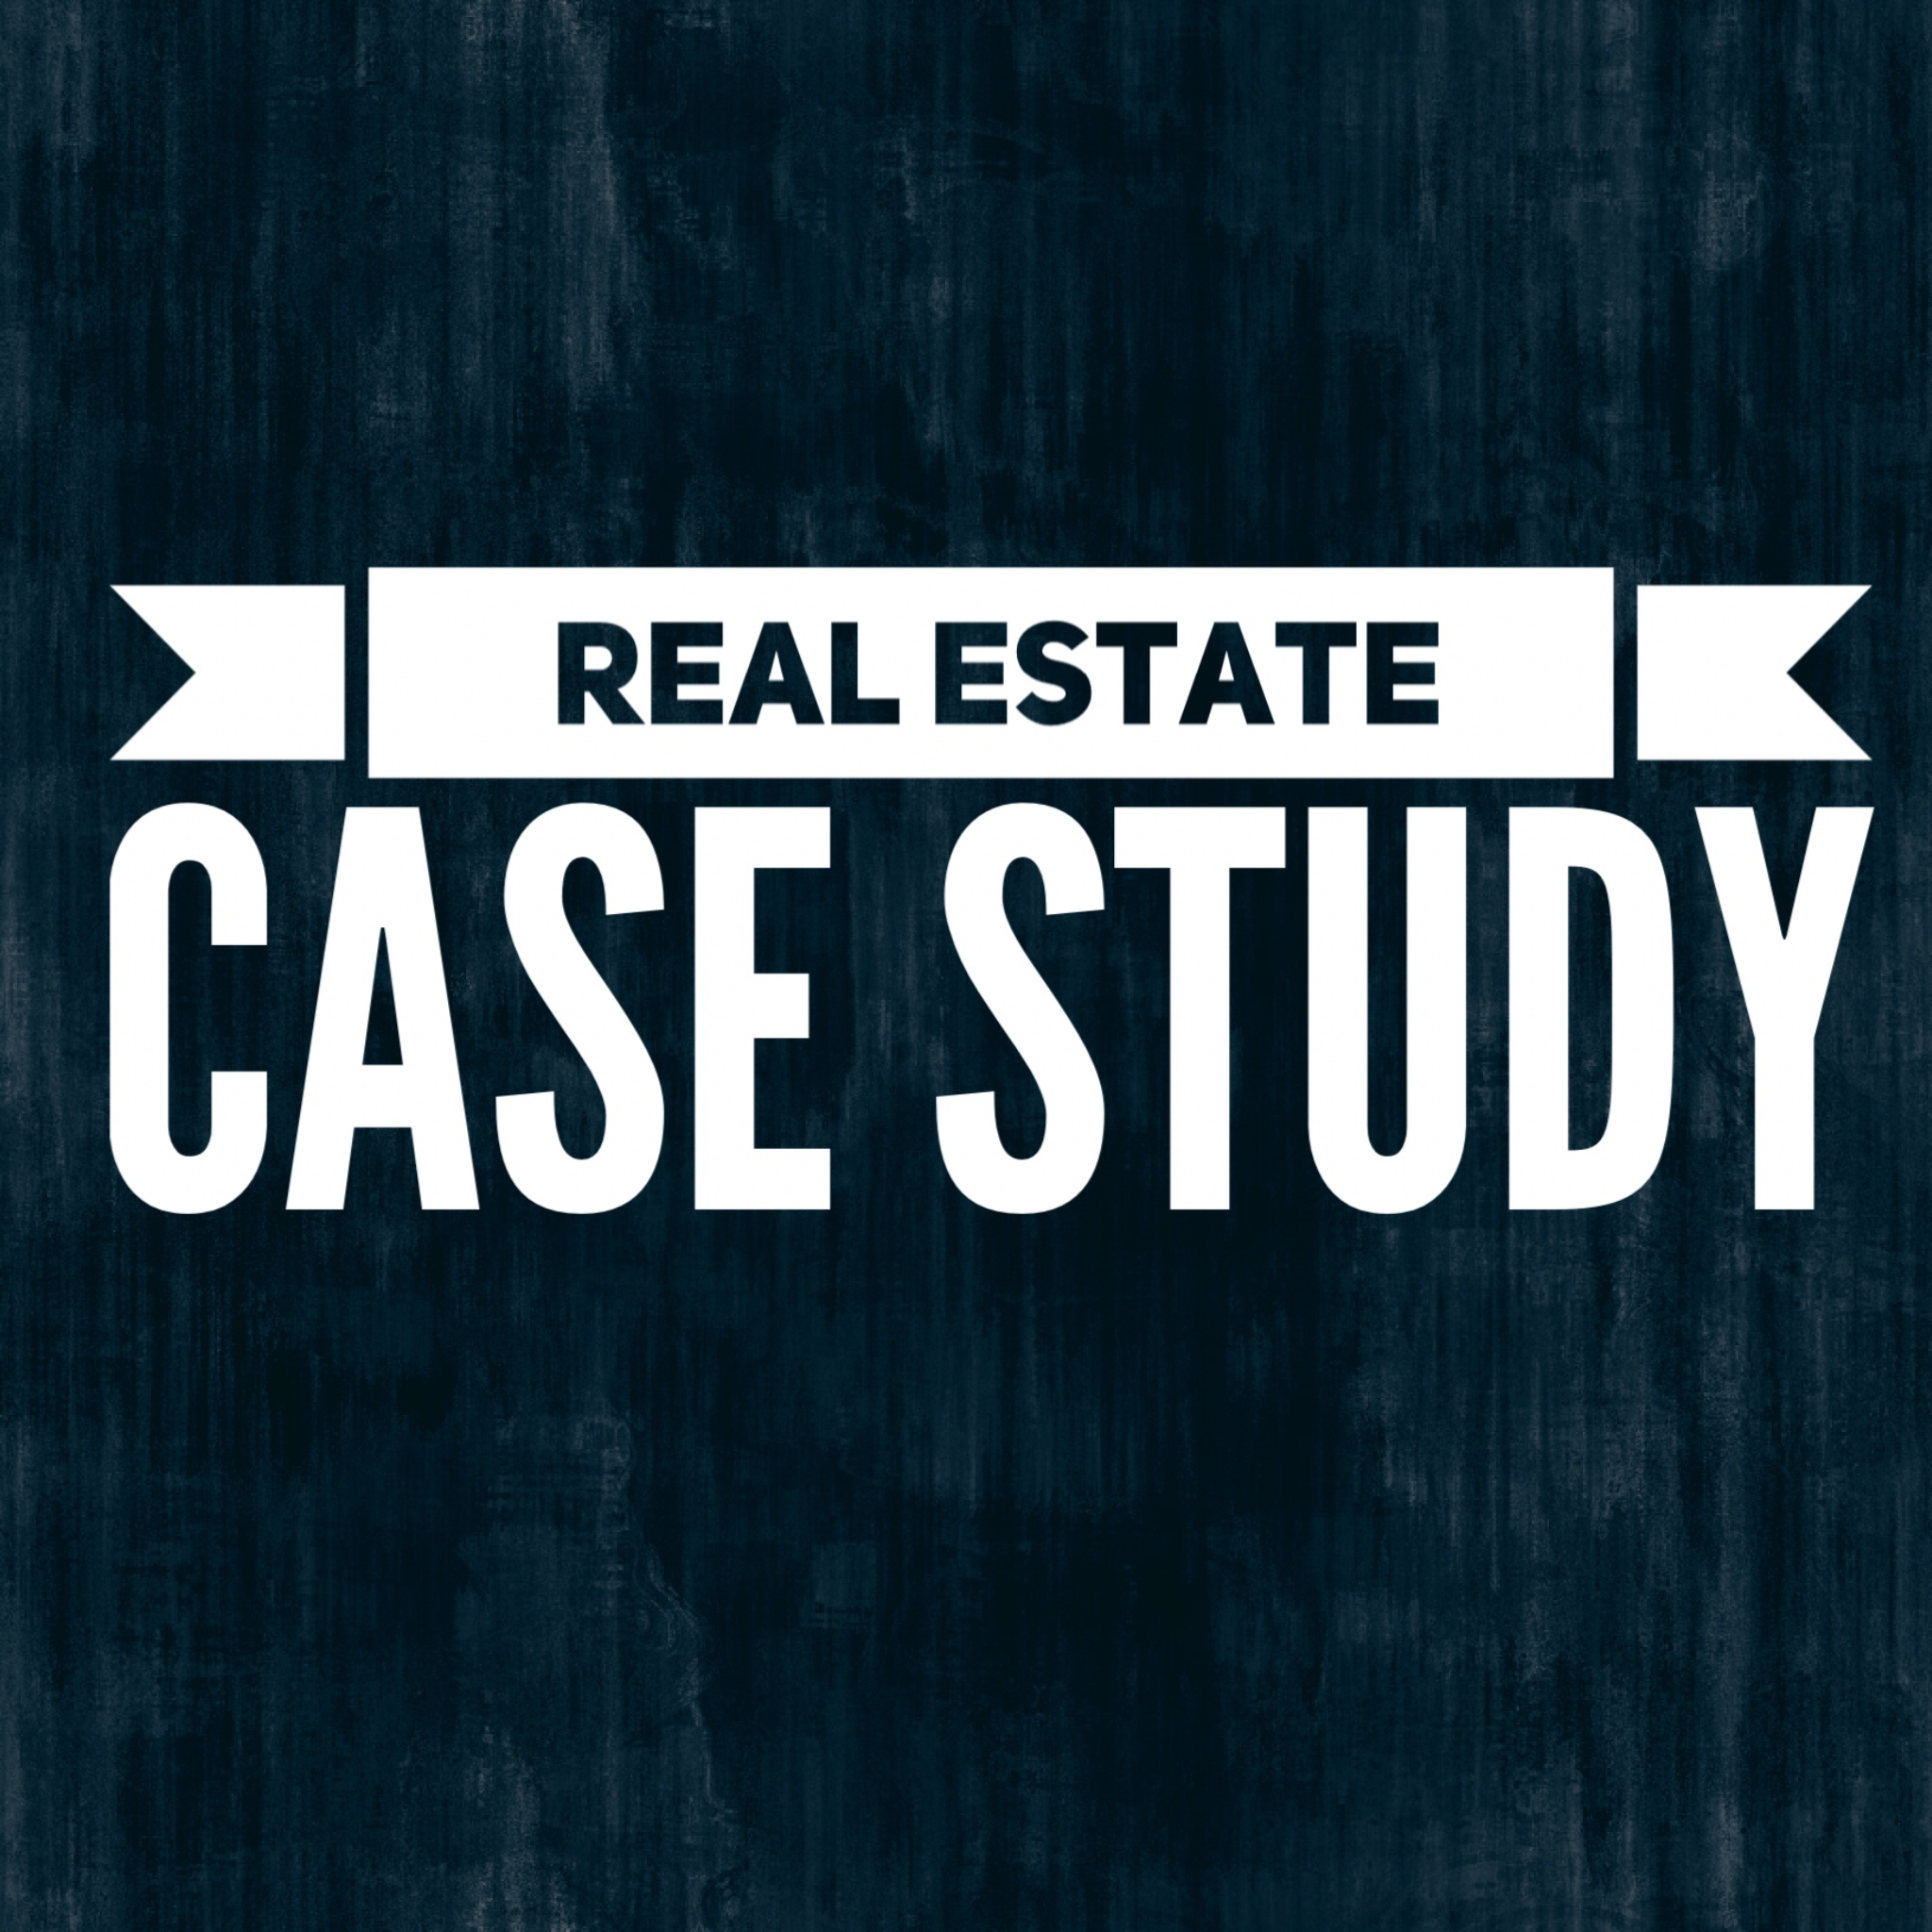 Real Estate Case Study: Escalation Clauses